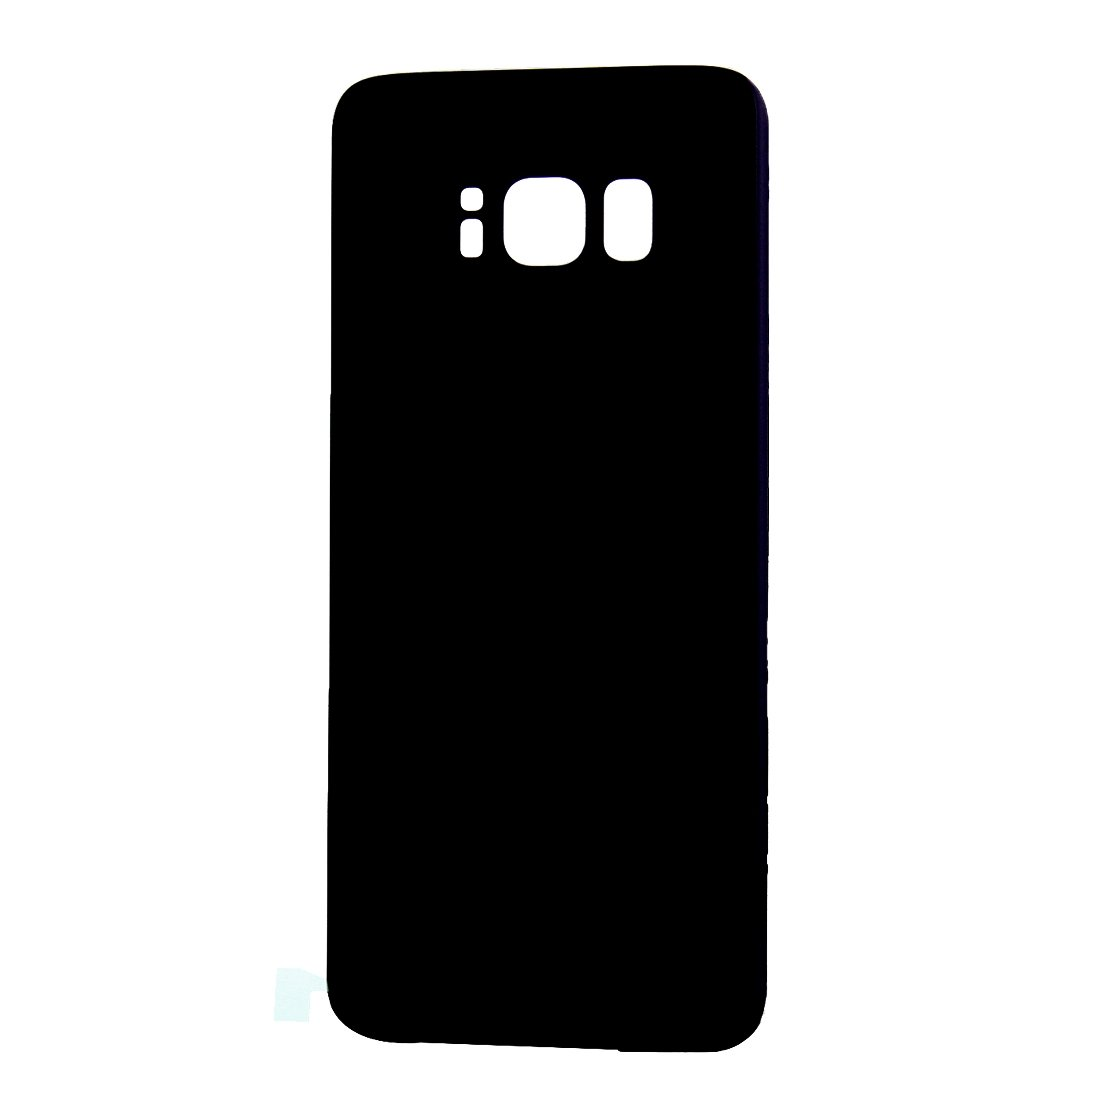 Wangl Mobile Phone Back Cover Battery Back Cover for Galaxy S8 (Midnight Black) Back Cover (Color : Color1) by Wangl